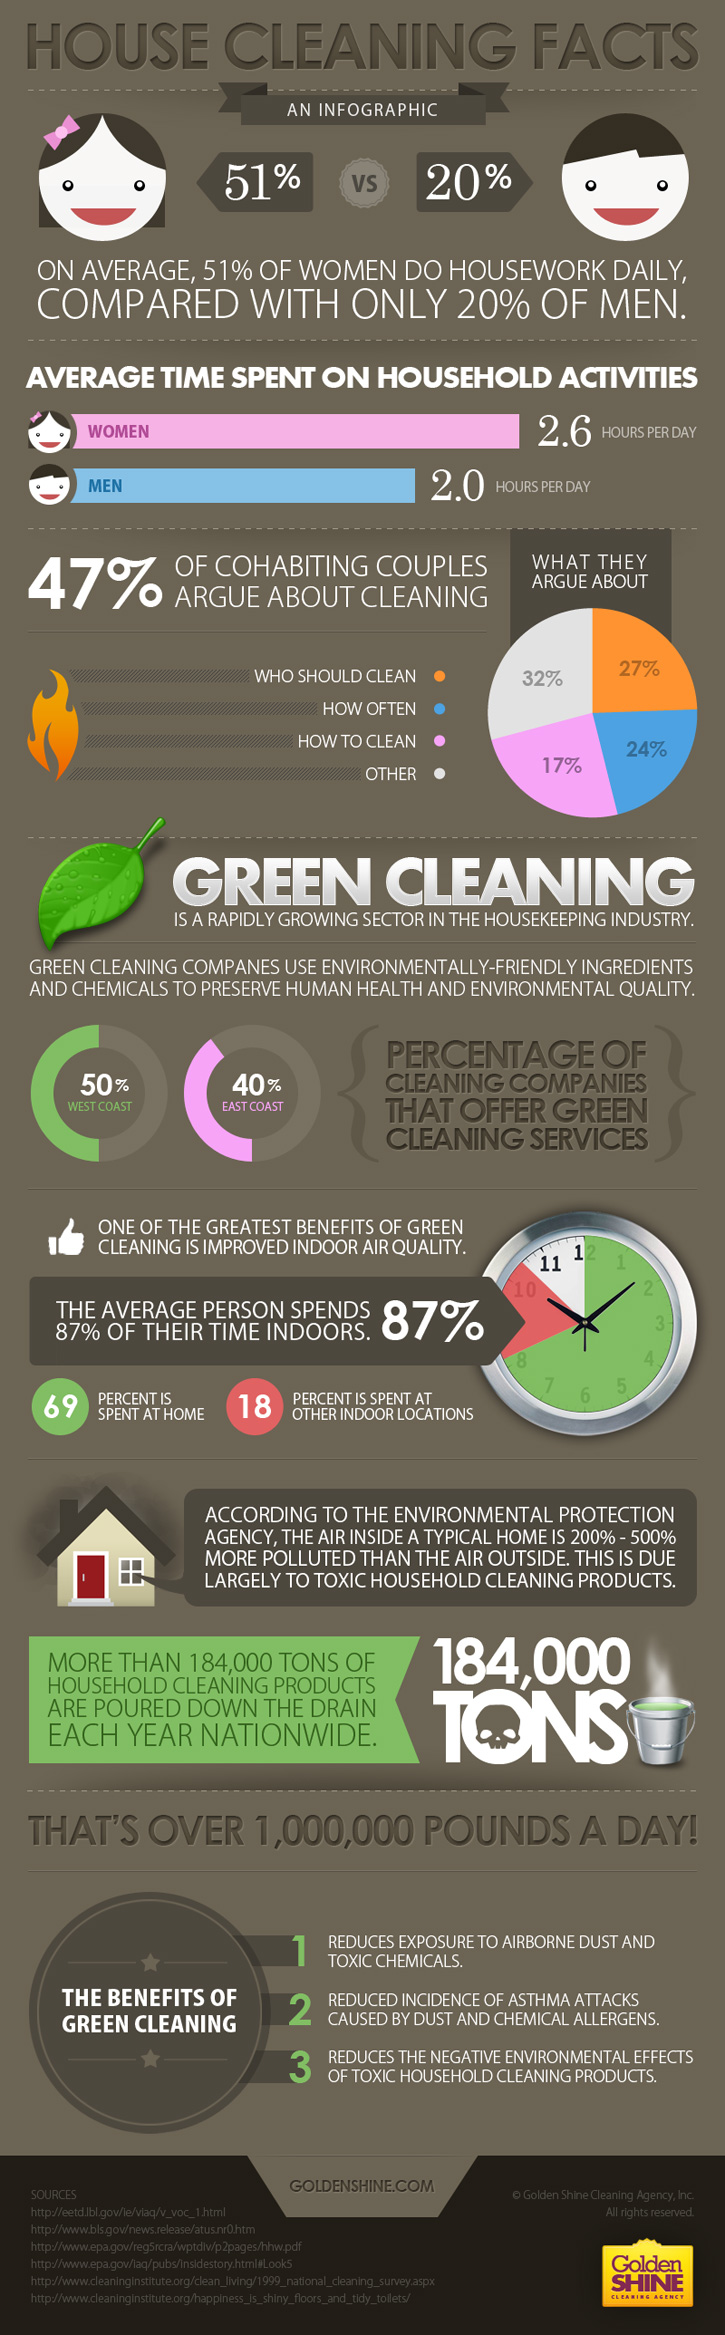 house_cleaning_infographic.jpg